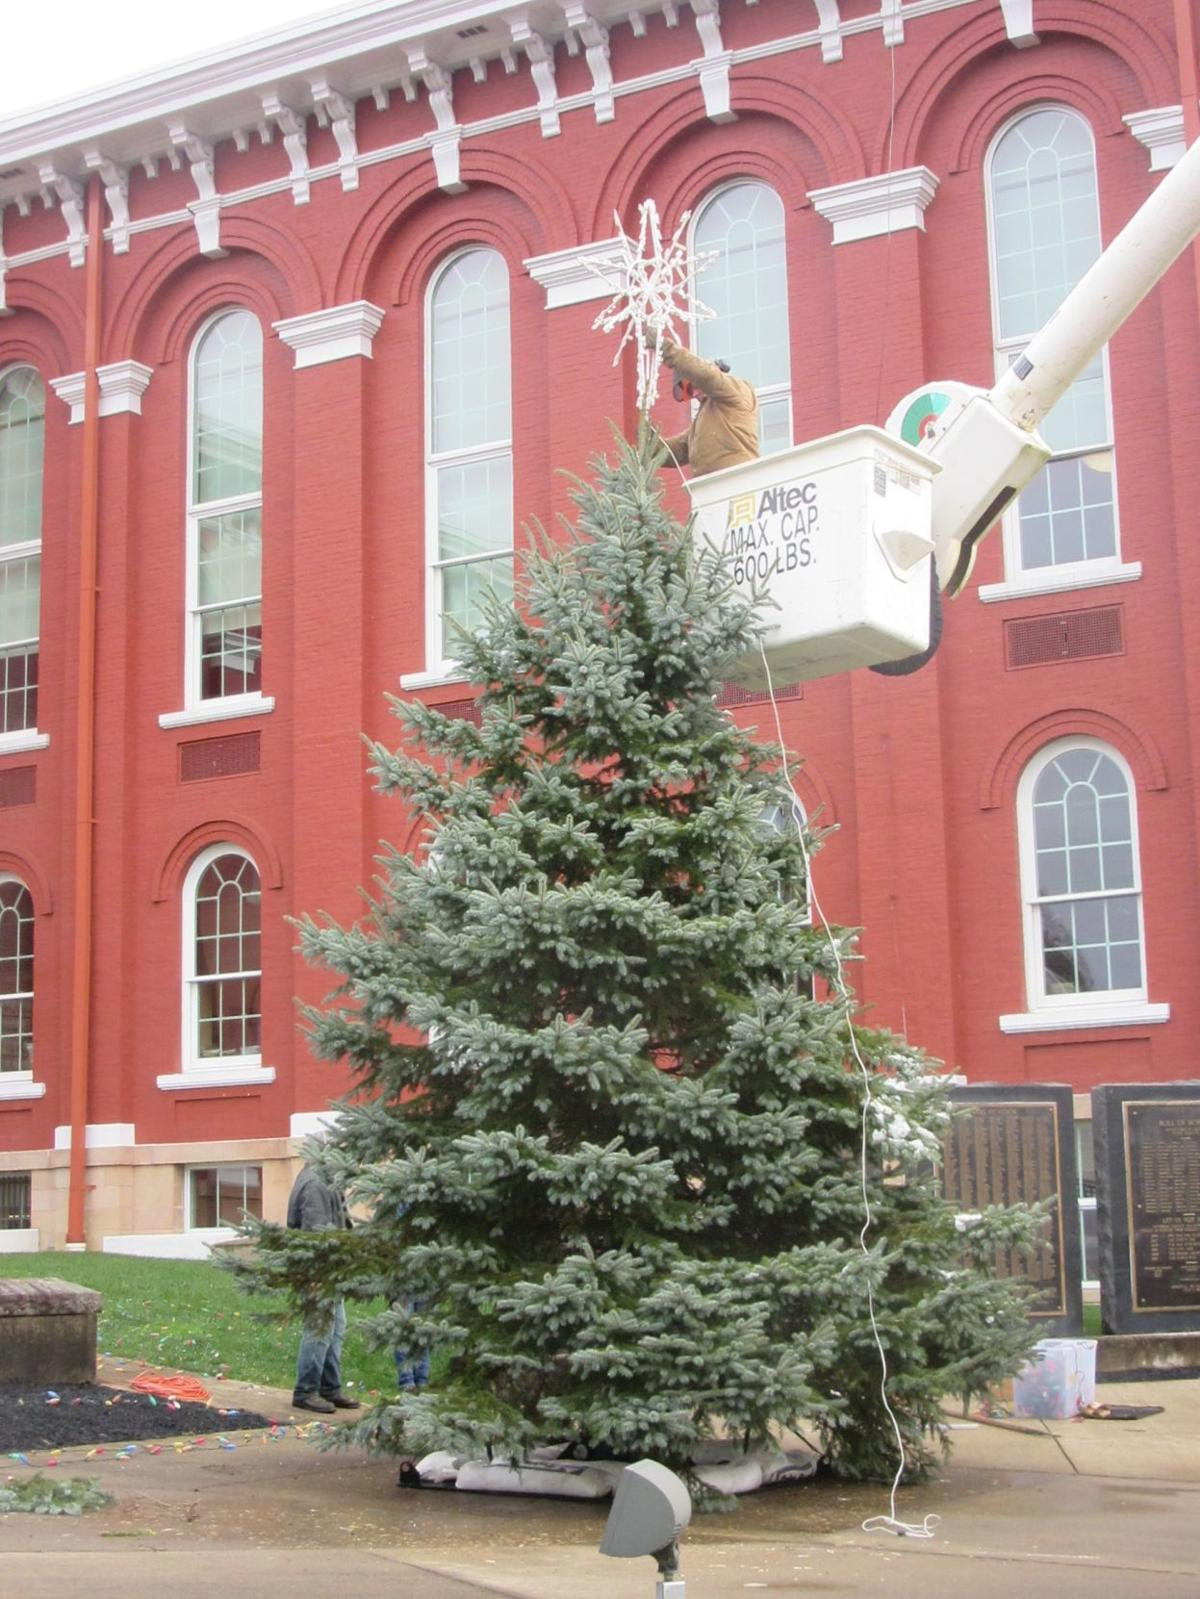 Placing the star on the community Christmas tree